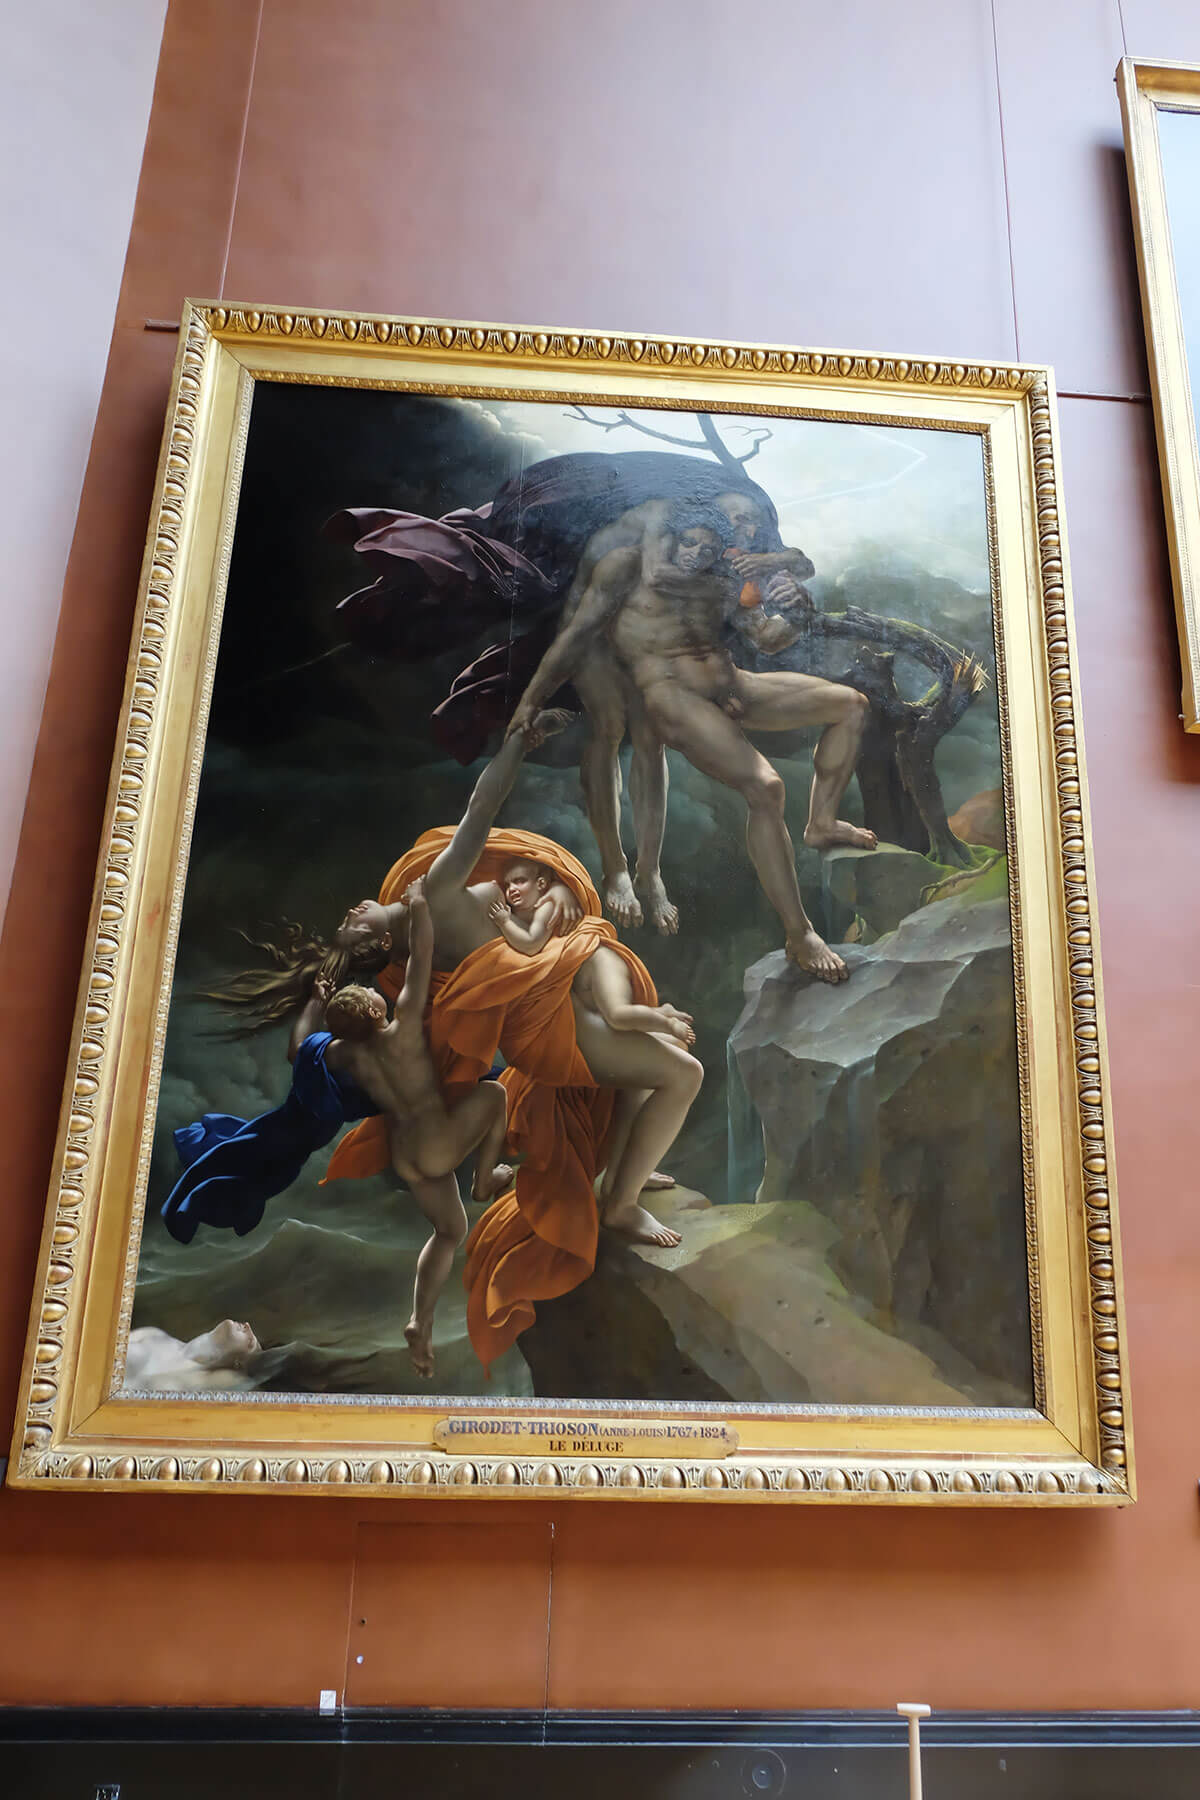 Girodet trioson - le deluge in the Louvre, France